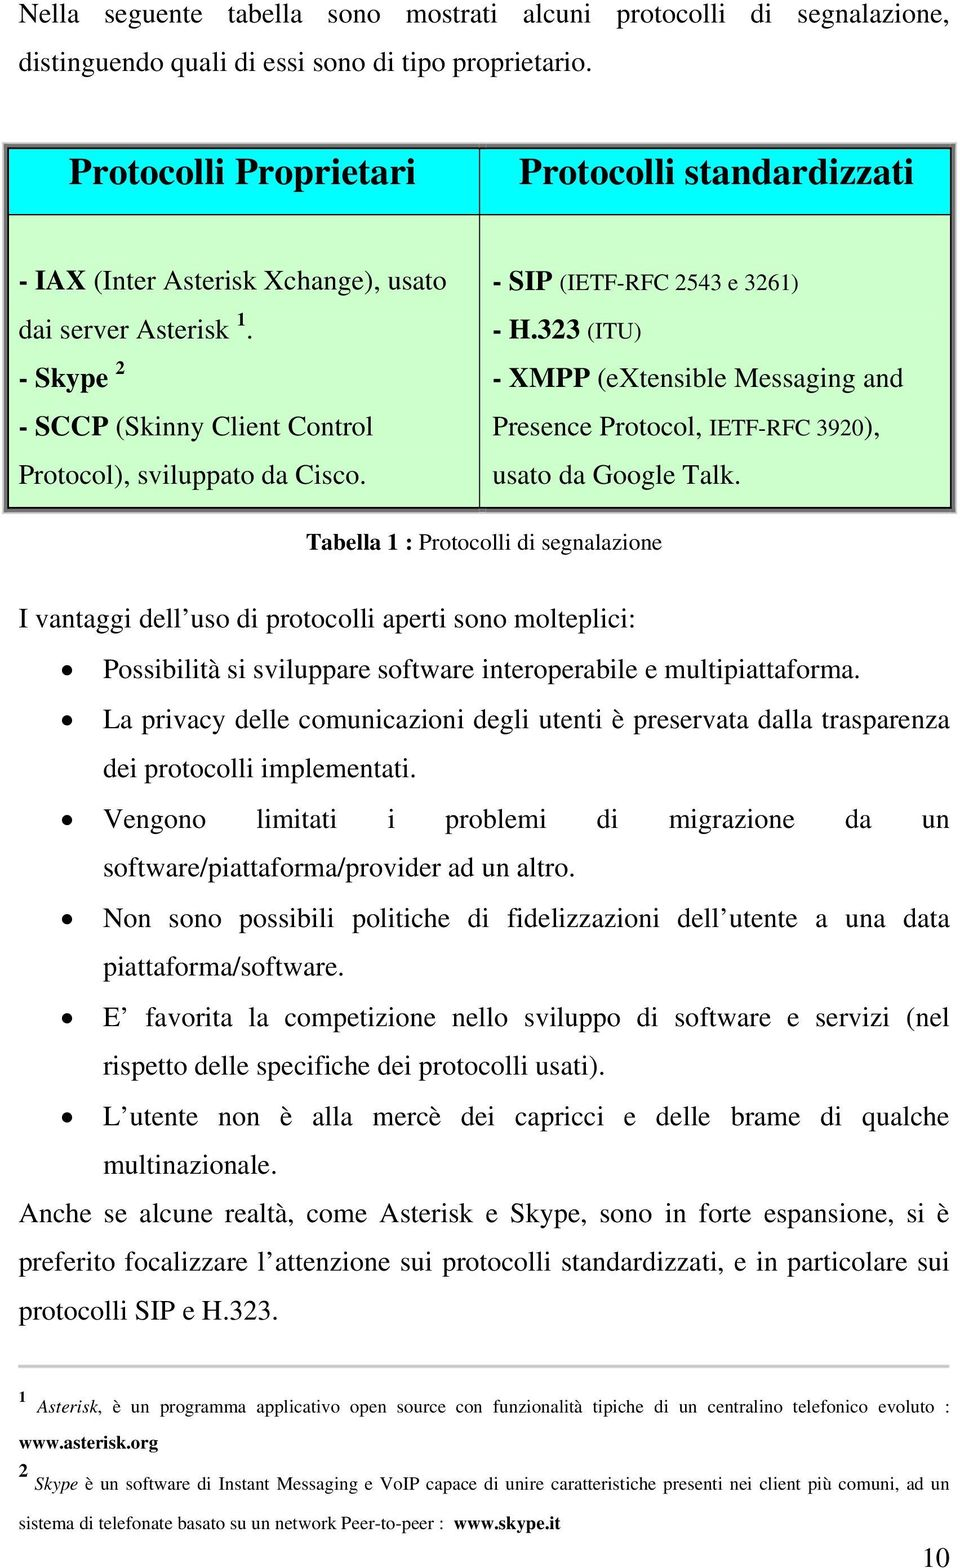 - SIP (IETF-RFC 2543 e 3261) - H.323 (ITU) - XMPP (extensible Messaging and Presence Protocol, IETF-RFC 3920), usato da Google Talk.